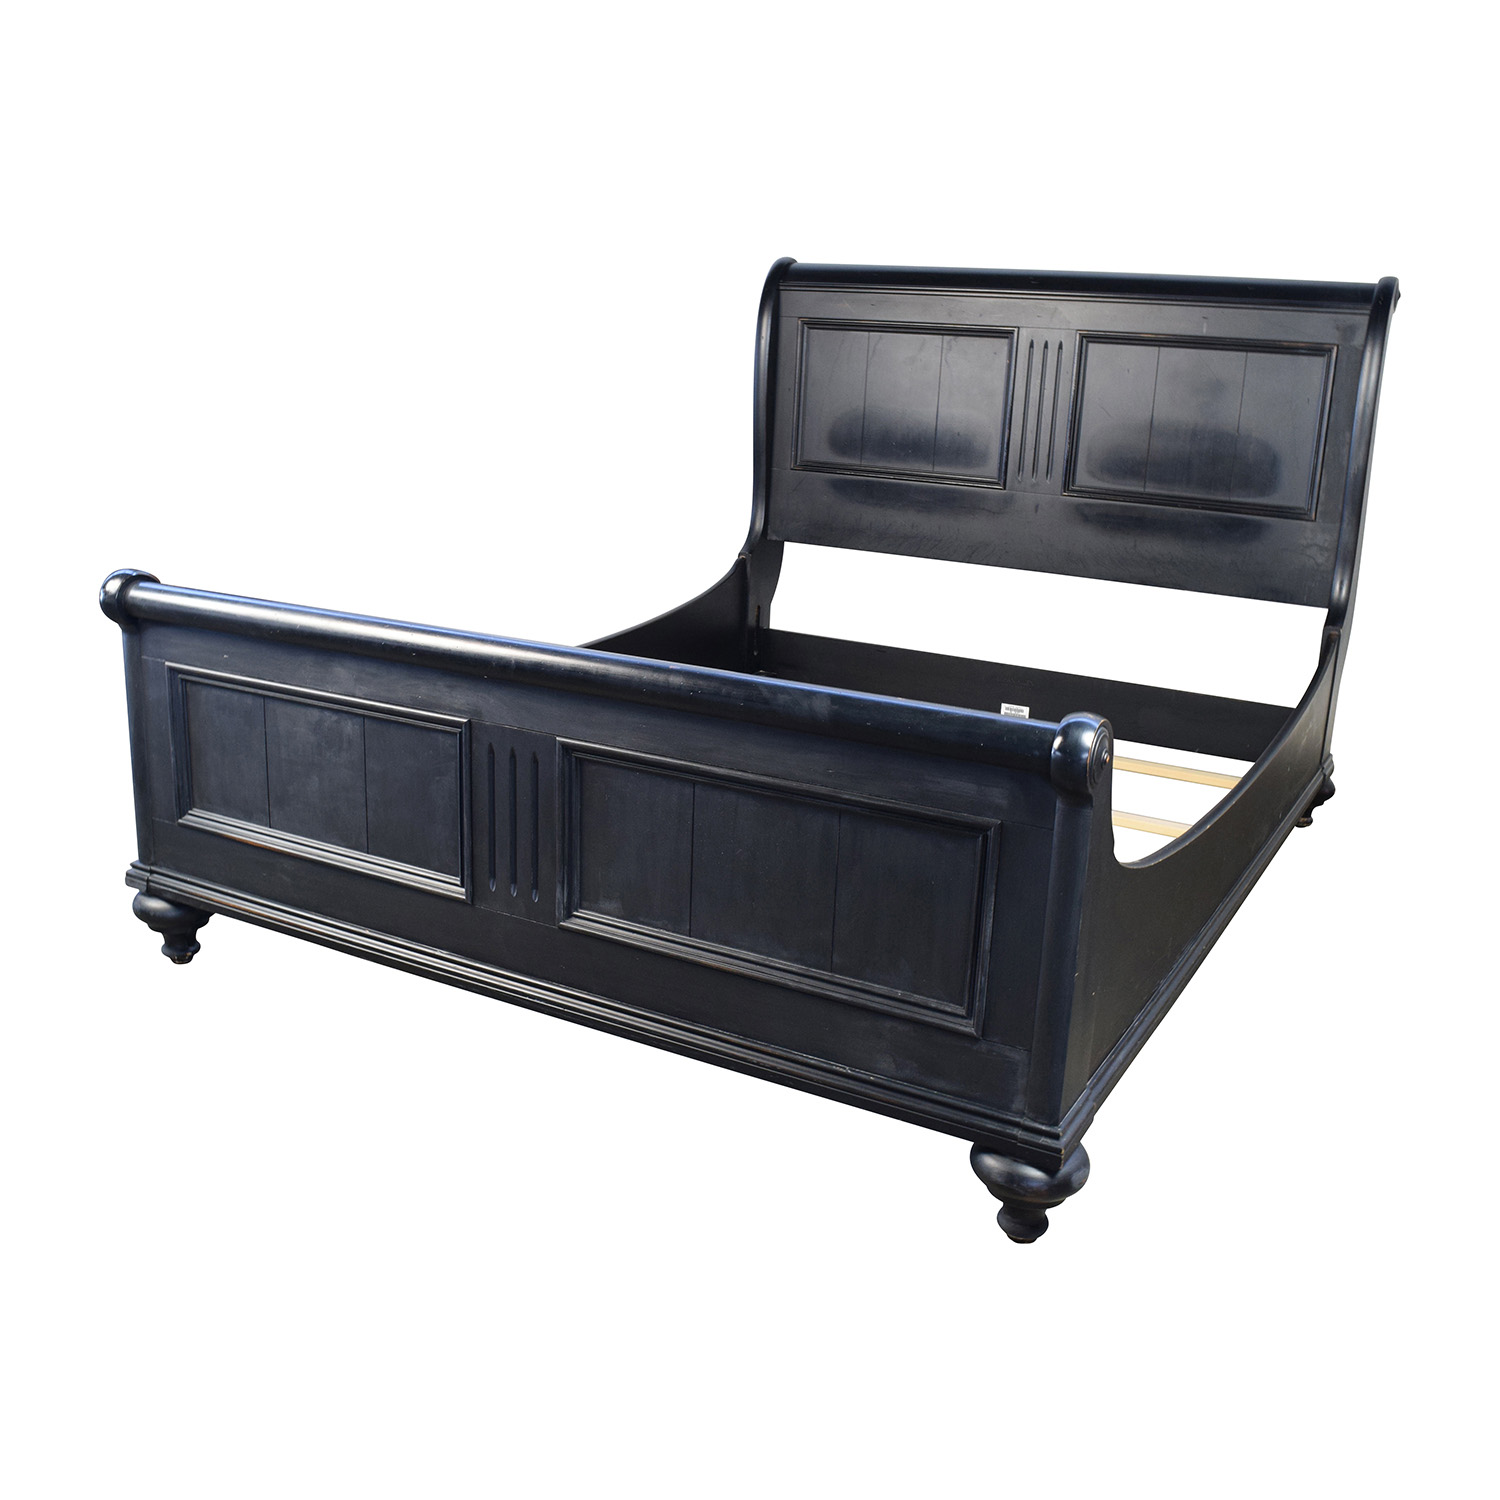 56 off ethan allen ethan allen ebony queen sleigh bed beds - Ethan allen queen beds ...